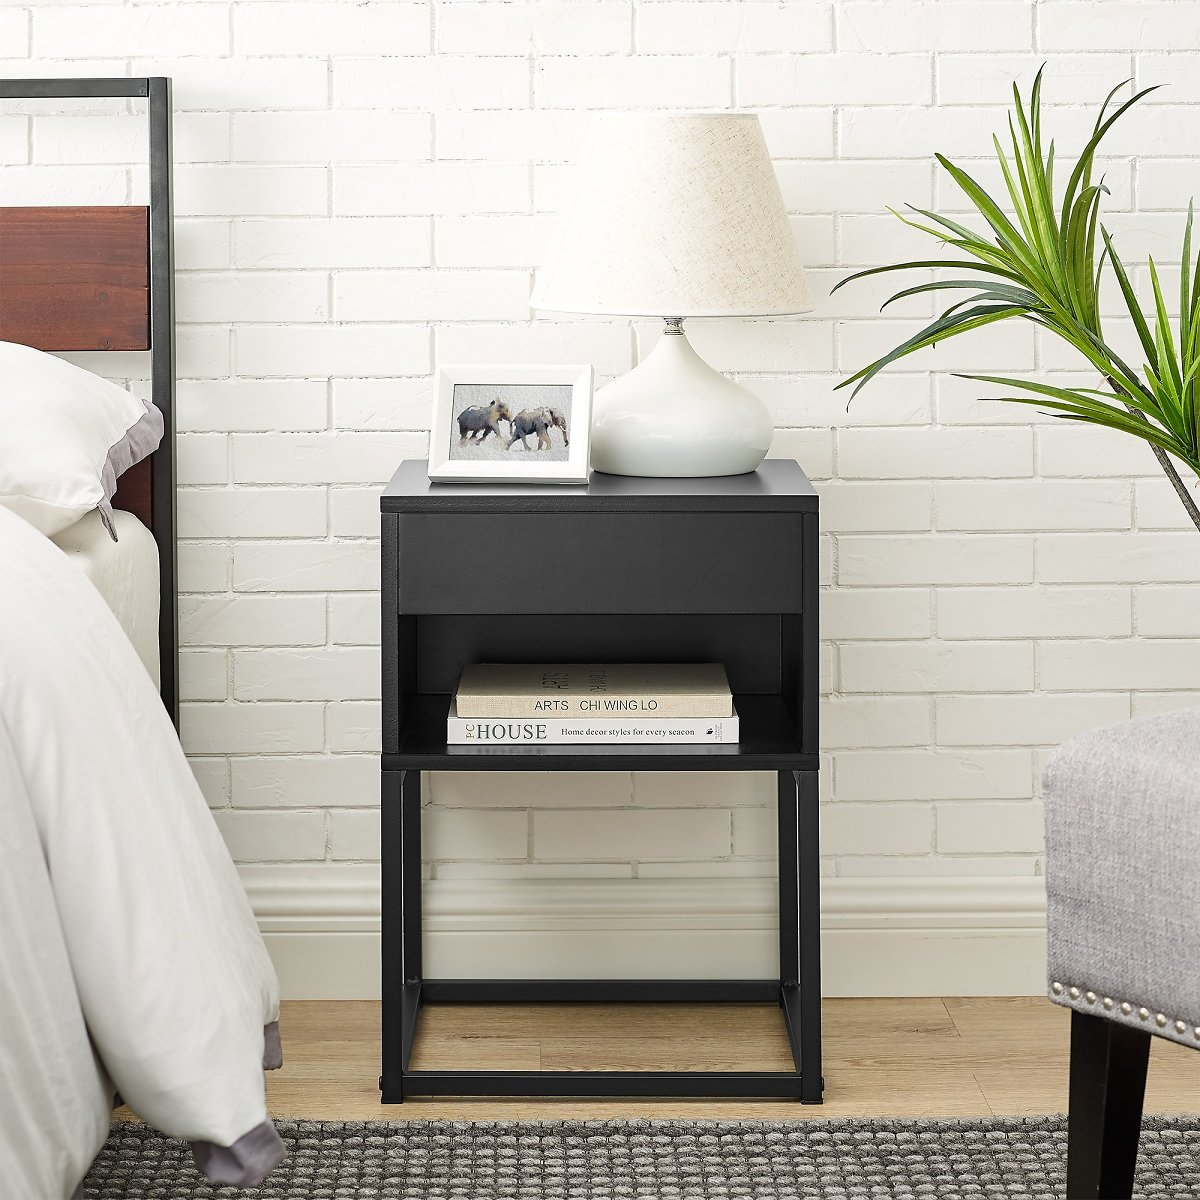 Musehomenic End Table with Drawer and Shelf, Metal Legs, Black